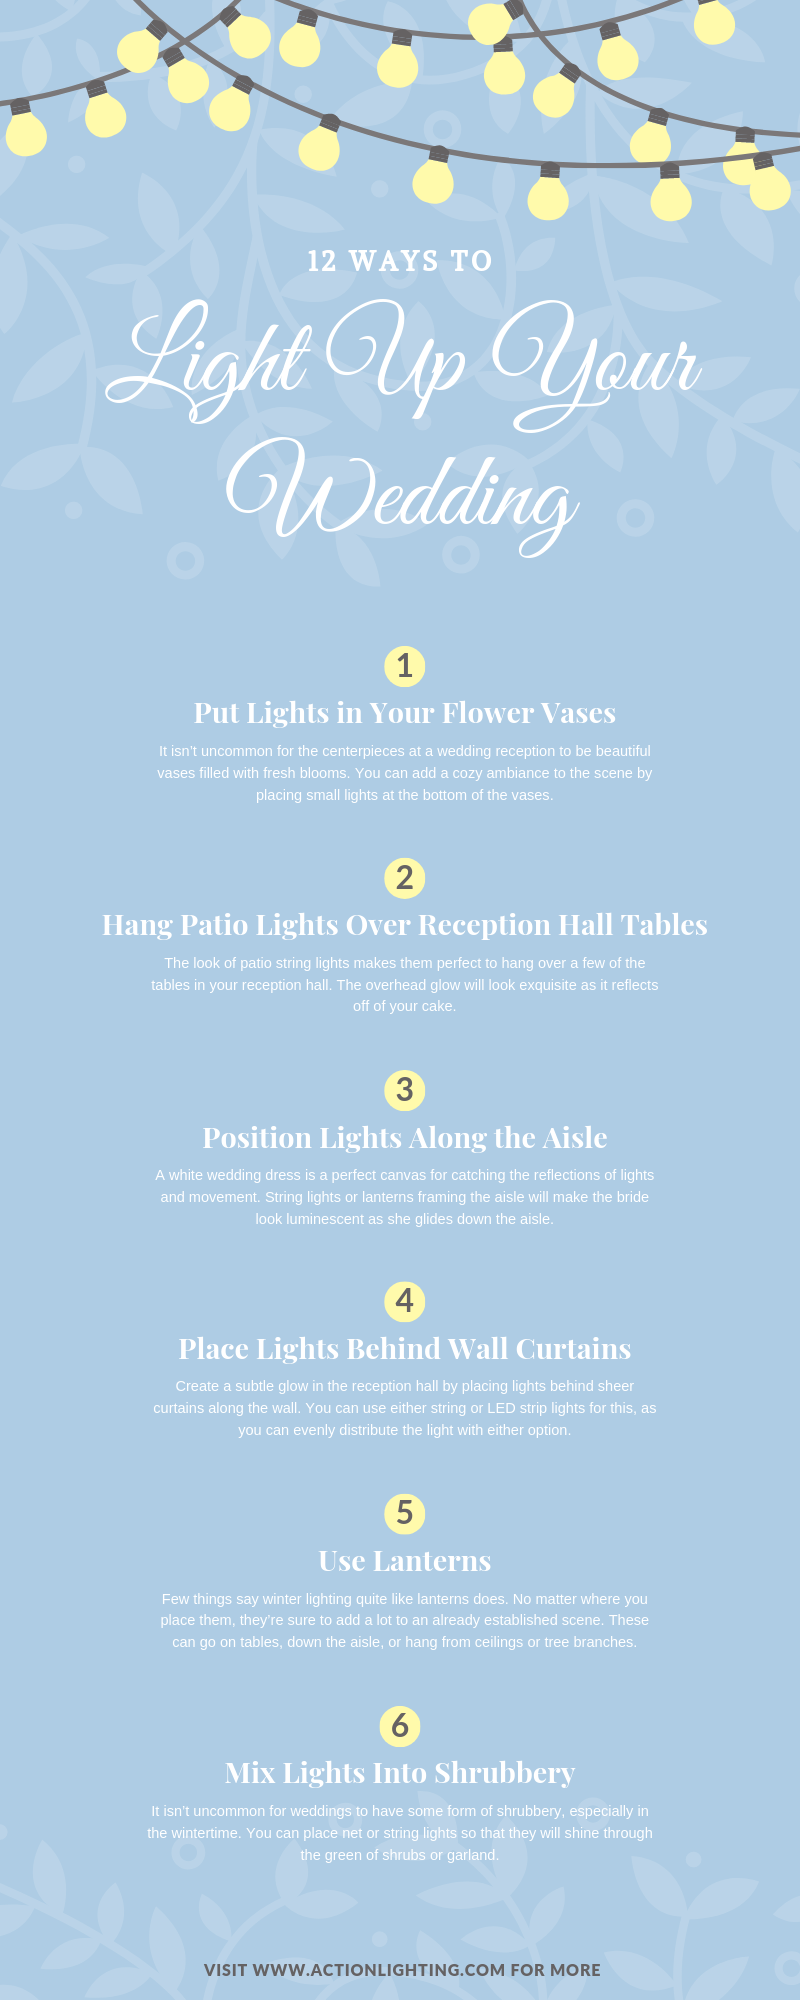 12 Ways to Light Up Your Wedding infographic